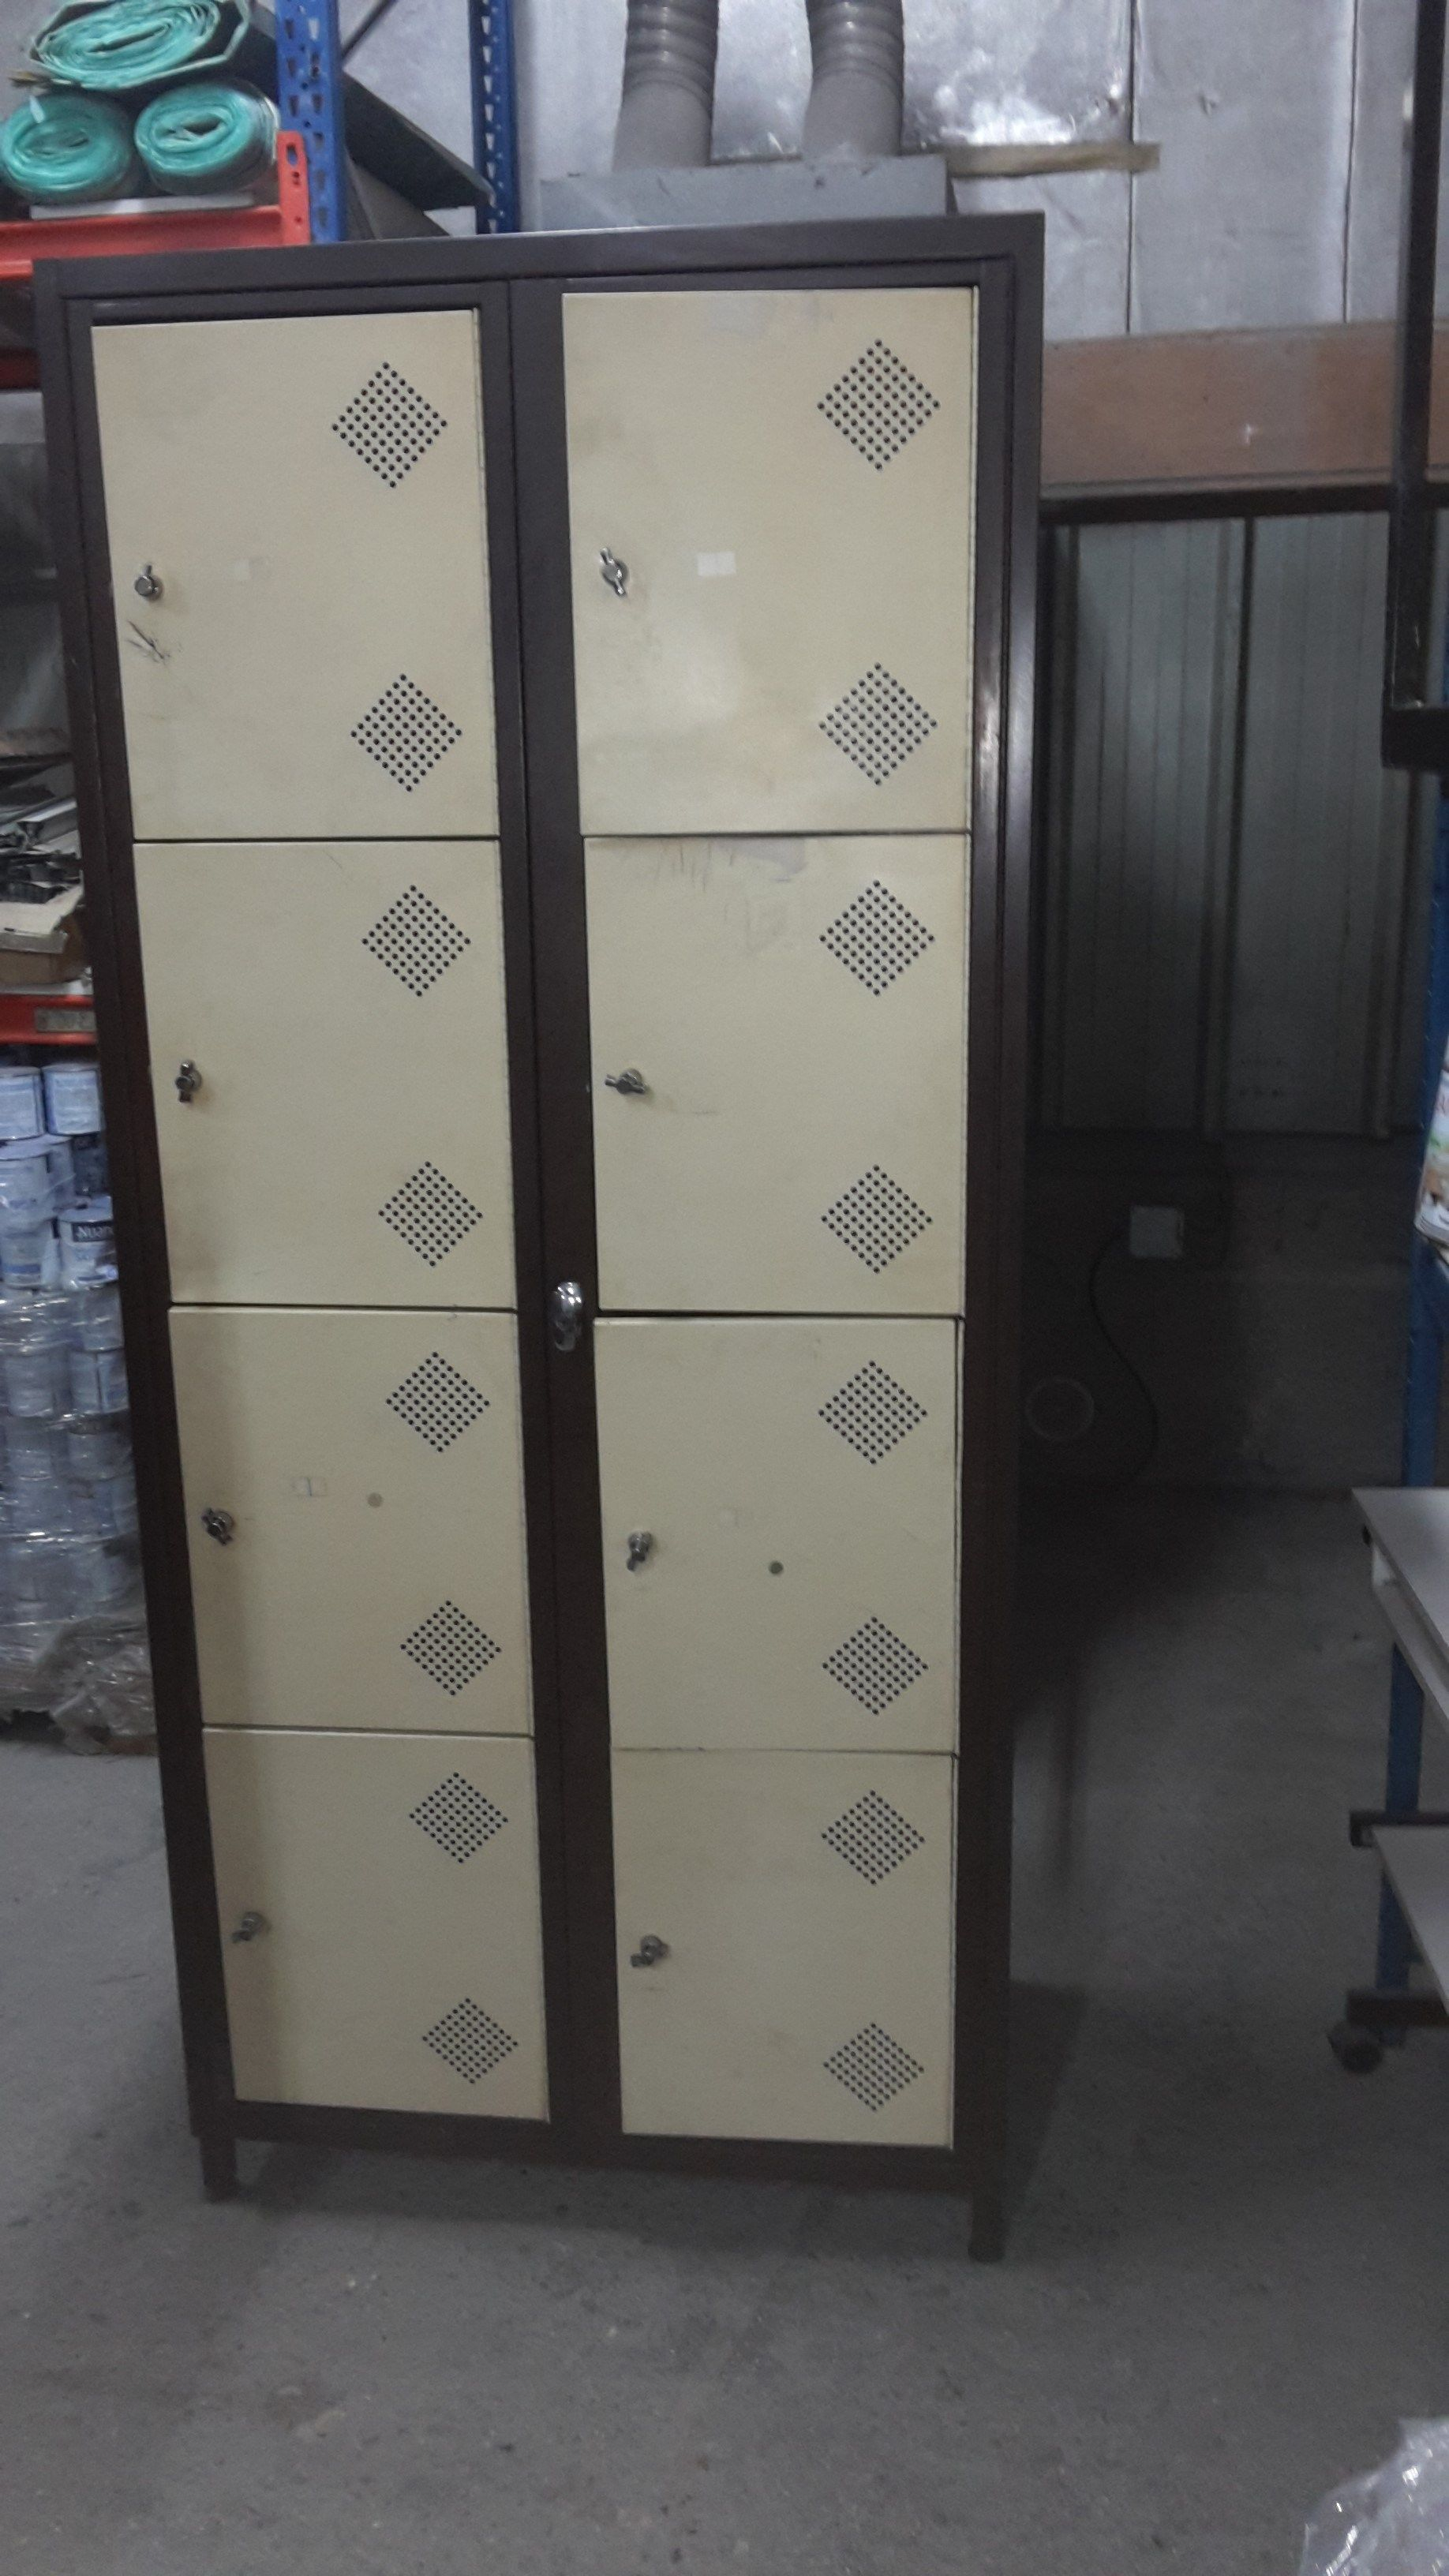 Armoire Metallique D Occasion Armoire Metallique D Occasion Armoire Metallique D Occasion En Belgique 75 Annonces Tectake Armo Locker Storage Storage Lockers